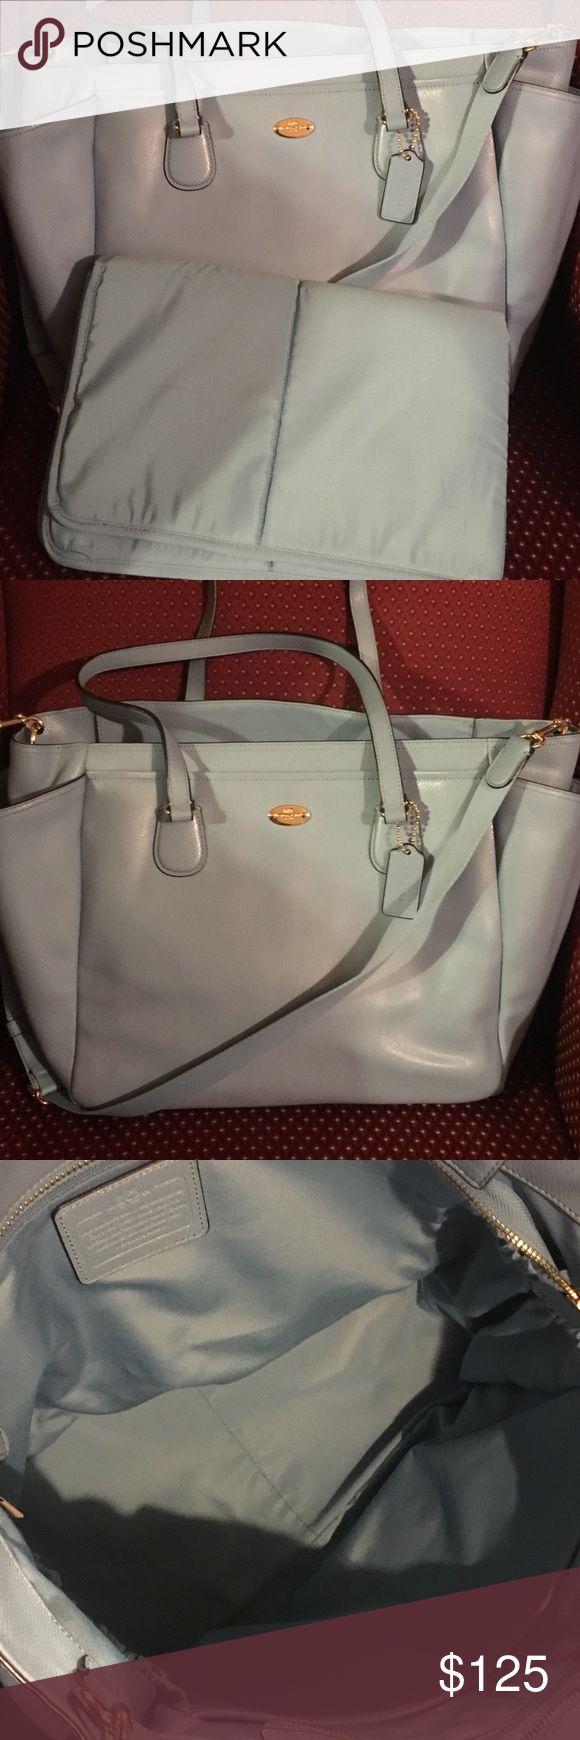 Authentic Coach Diaper bag Authentic Coach light blue all leather diaper bag in excellent condition. With long strap and can be used as a cross body bag. Very clean inside out! Bought this at Macy's for $389. Great buy! ❤️ Coach Bags Baby Bags